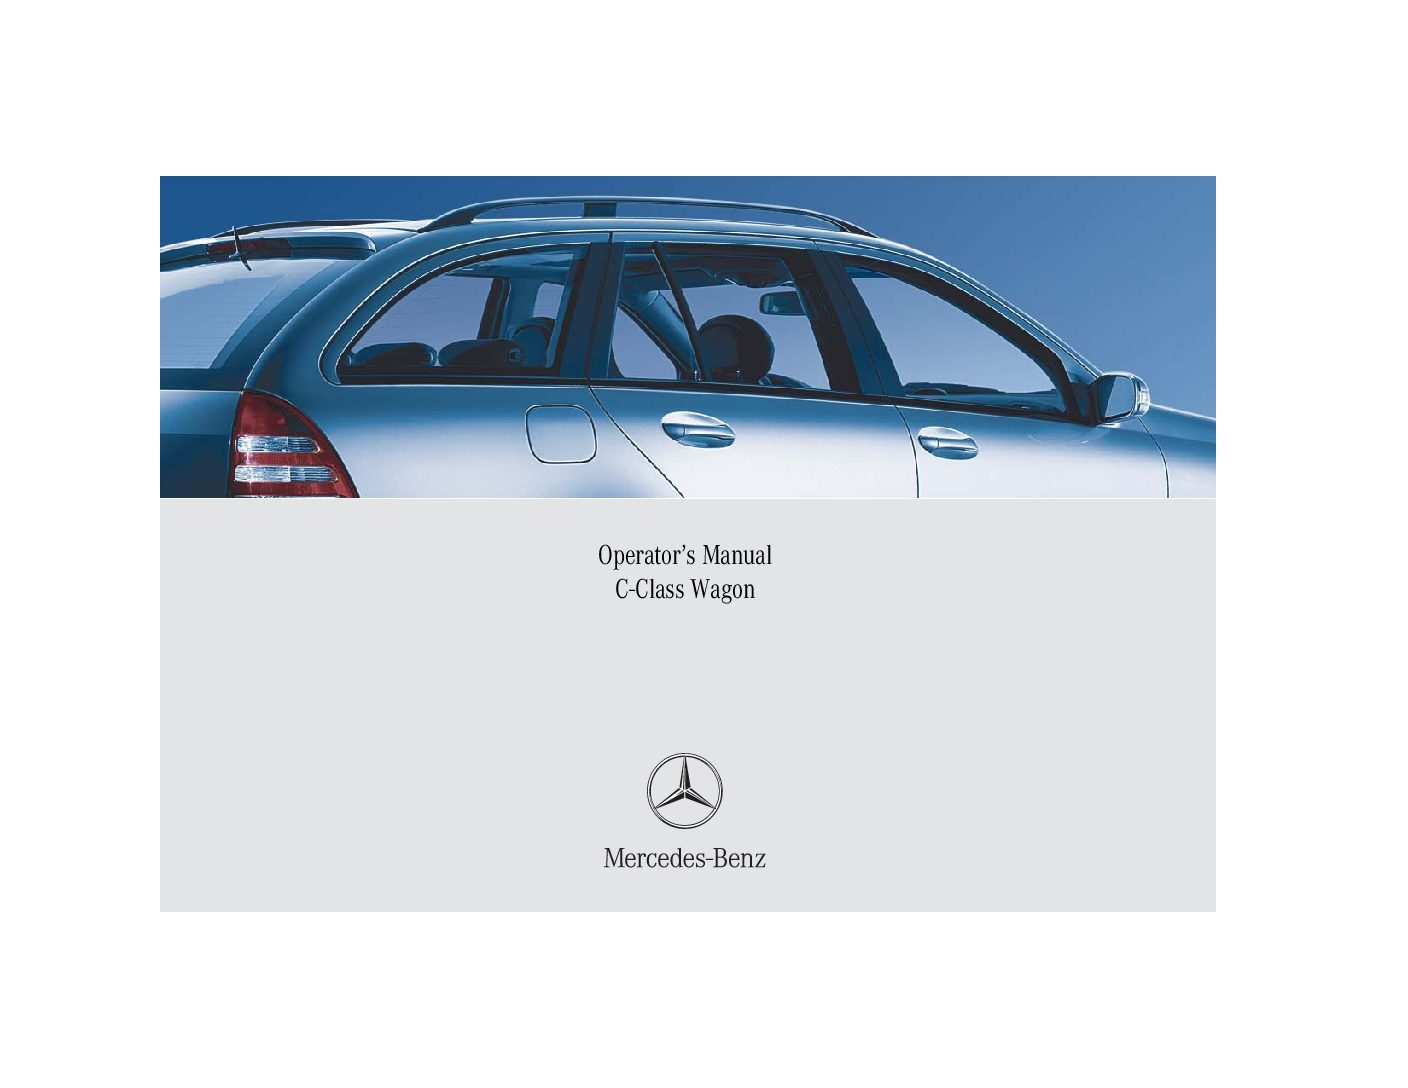 2005 mercedes benz c class wagon owners manual just give me the rh justgivemethedamnmanual com 2003 Mercedes C-Class Mercedes C-Class 2014